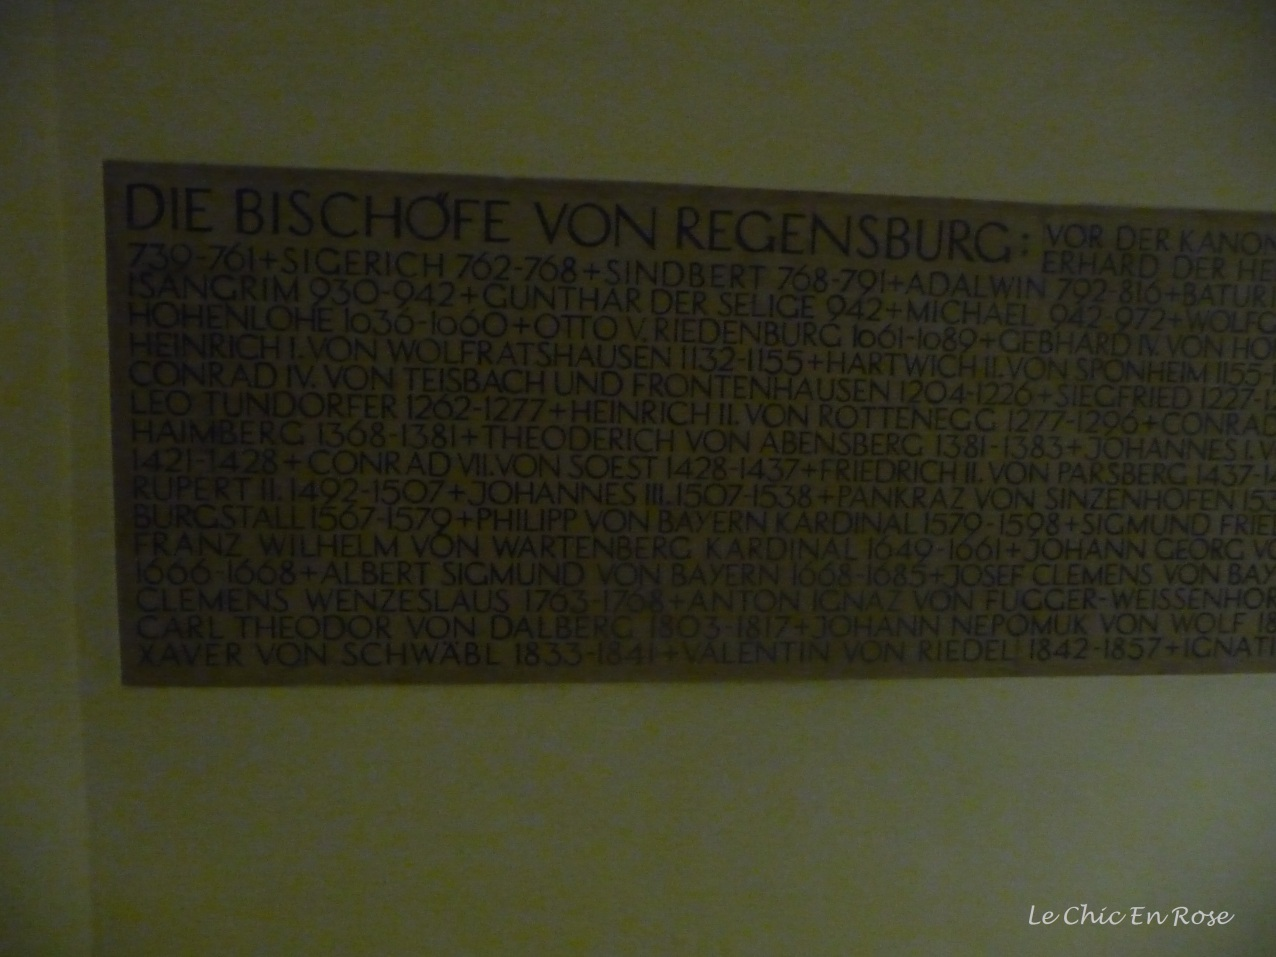 Plaque with names of all the Bishops of Regensburg inscribed on it